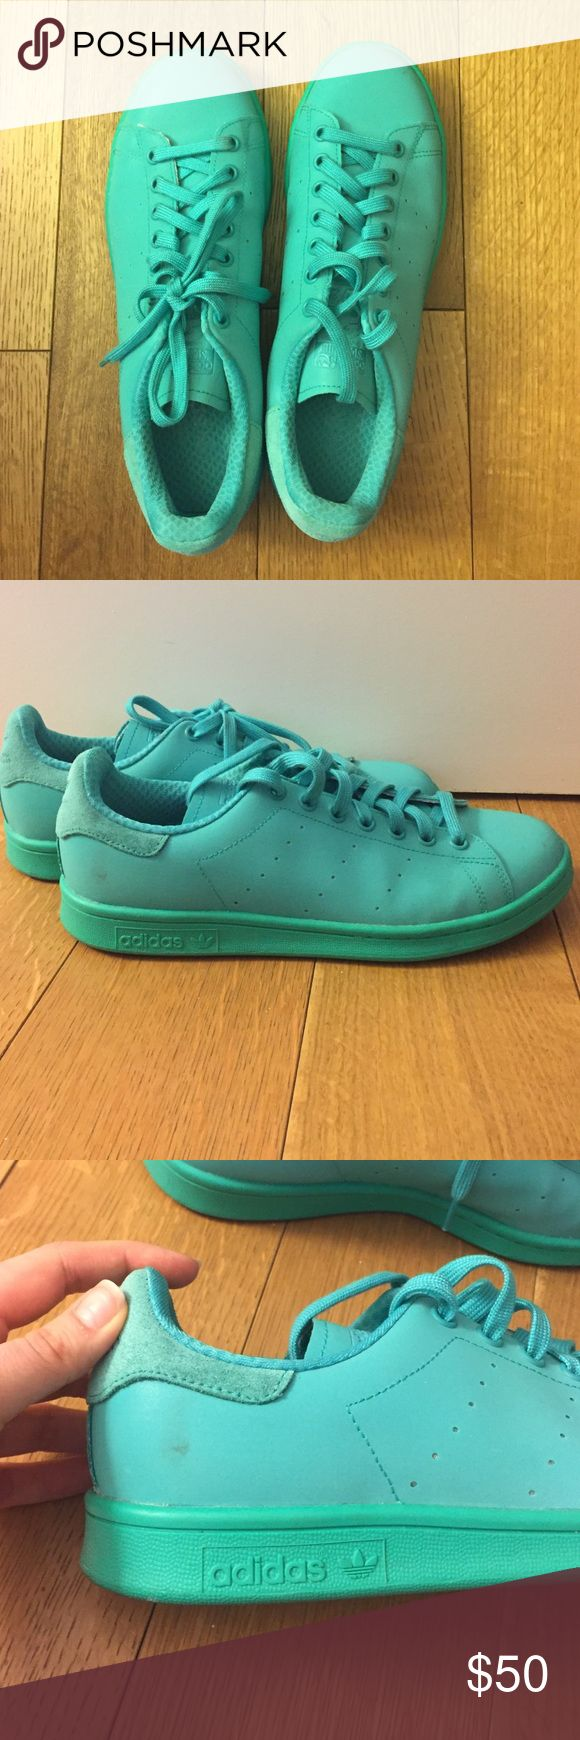 Adidas Adicolor Stan Smith sneakers Barely worn aqua color Stan Smiths! They are men's size 8 which fits women's 9.5 / 10. There is a small spot on the left shoe, see photo. Adidas Shoes Sneakers